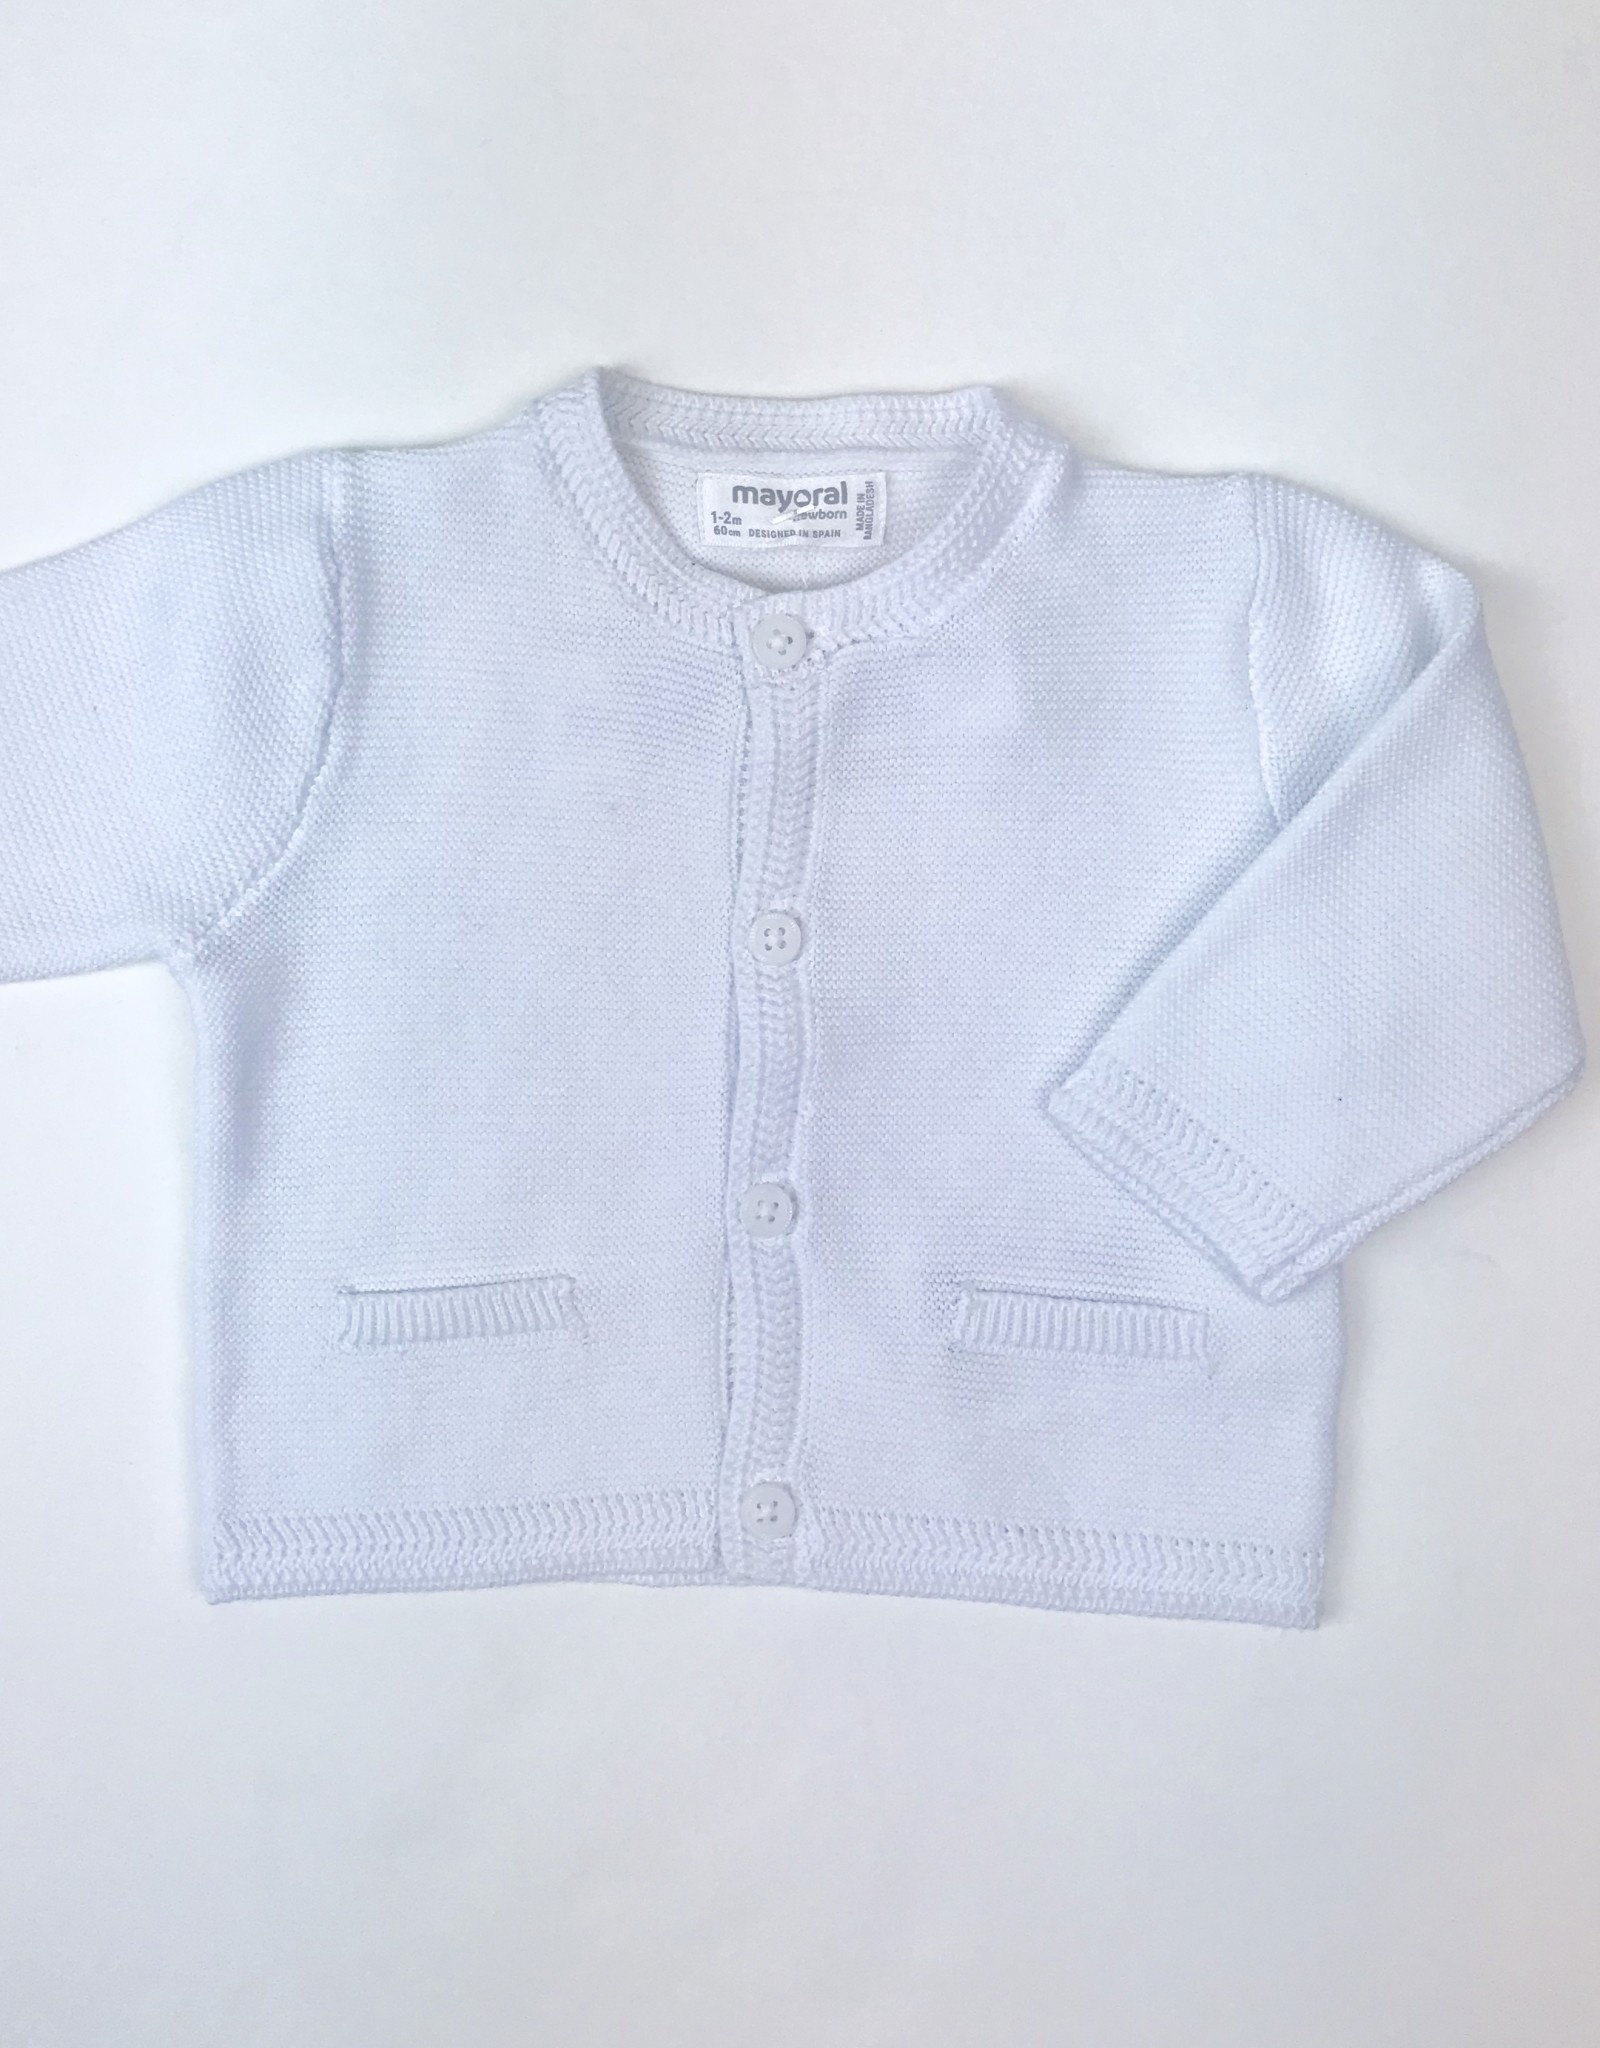 Mayoral Cardigan white herringbone rib Mayoral NB-1m